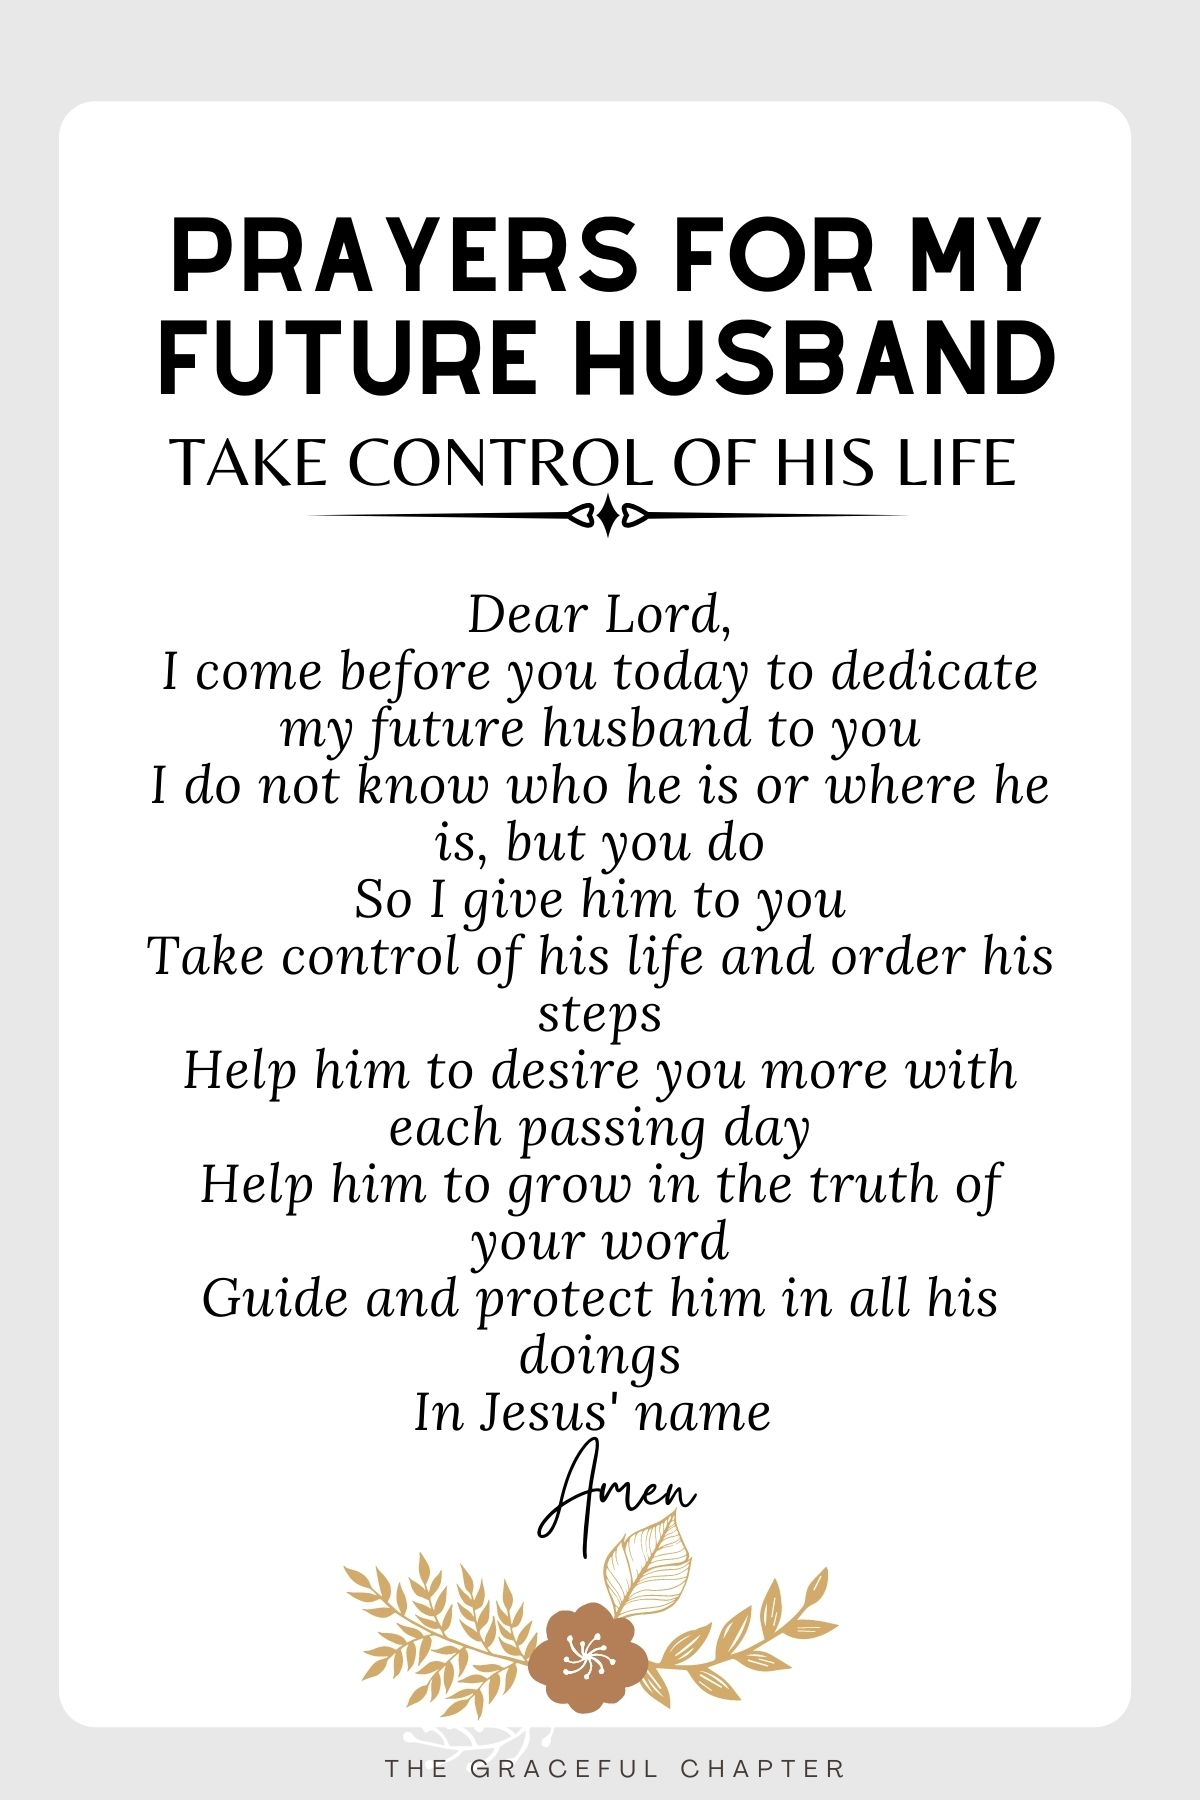 Prayer for my future husband -Take control of his life